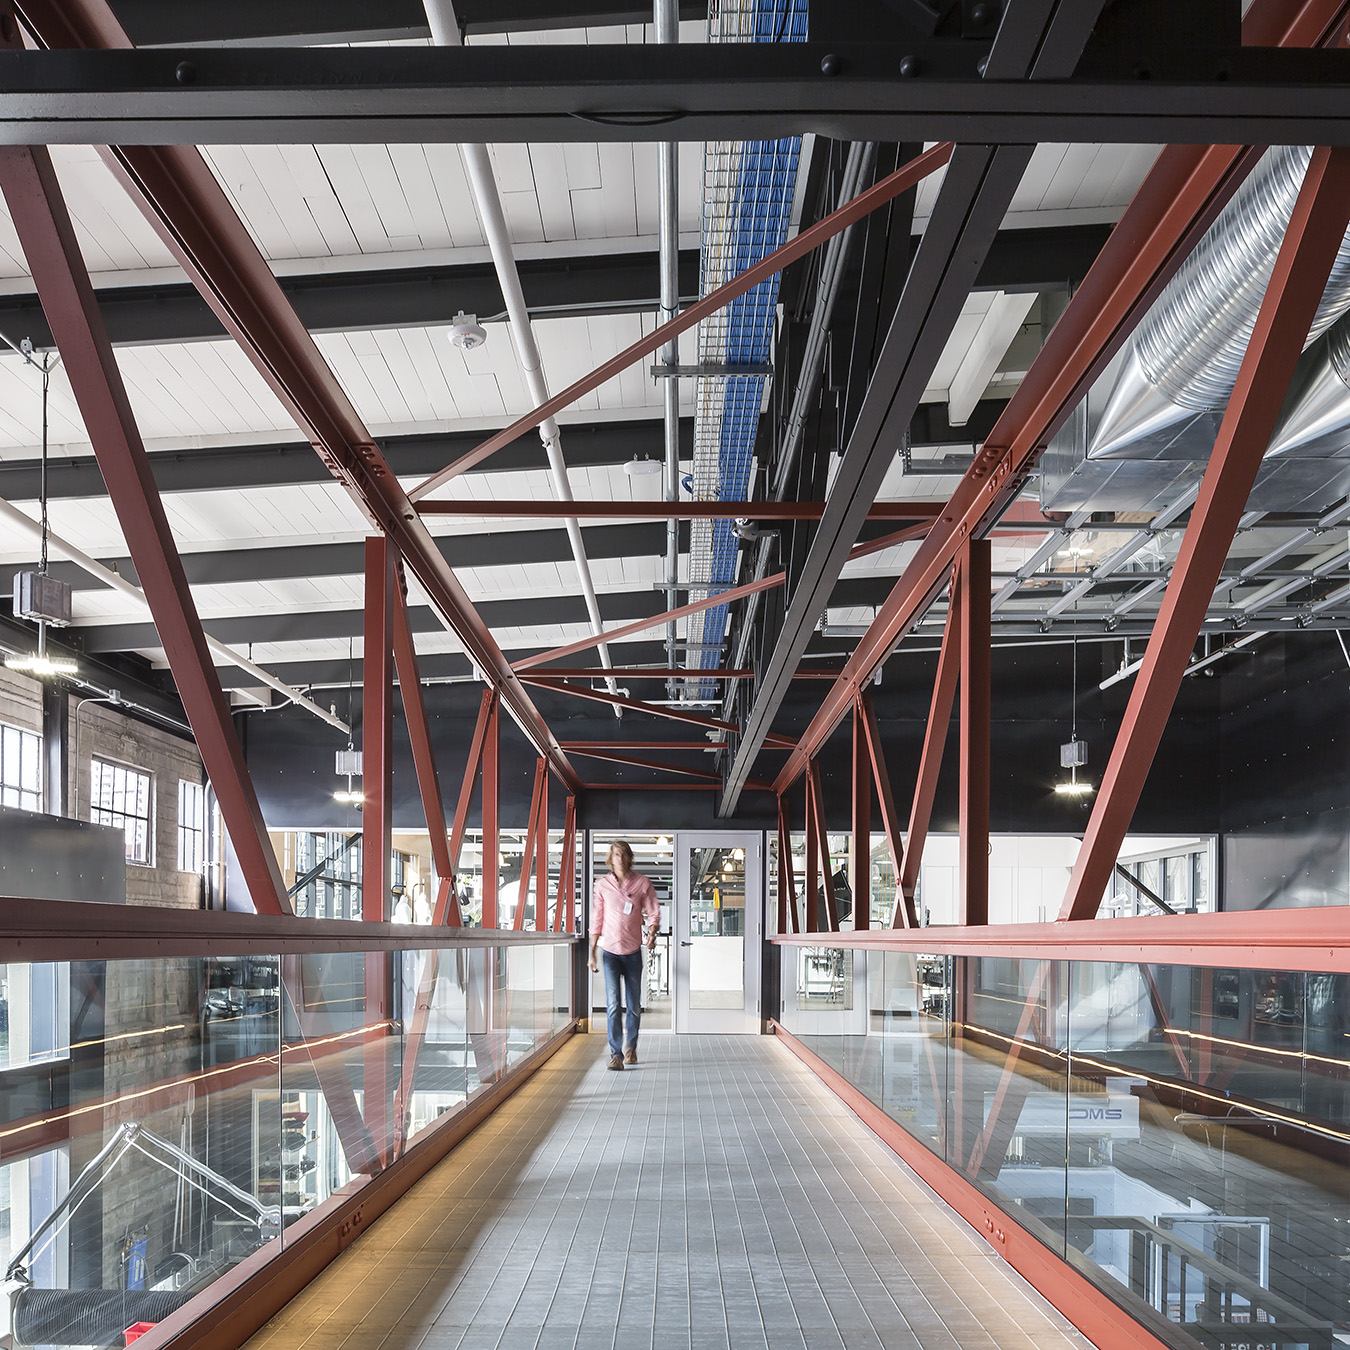 Autodesk Pier 9 San Francisco Pedestrian Bridge on Mezzanine Level with Trusses